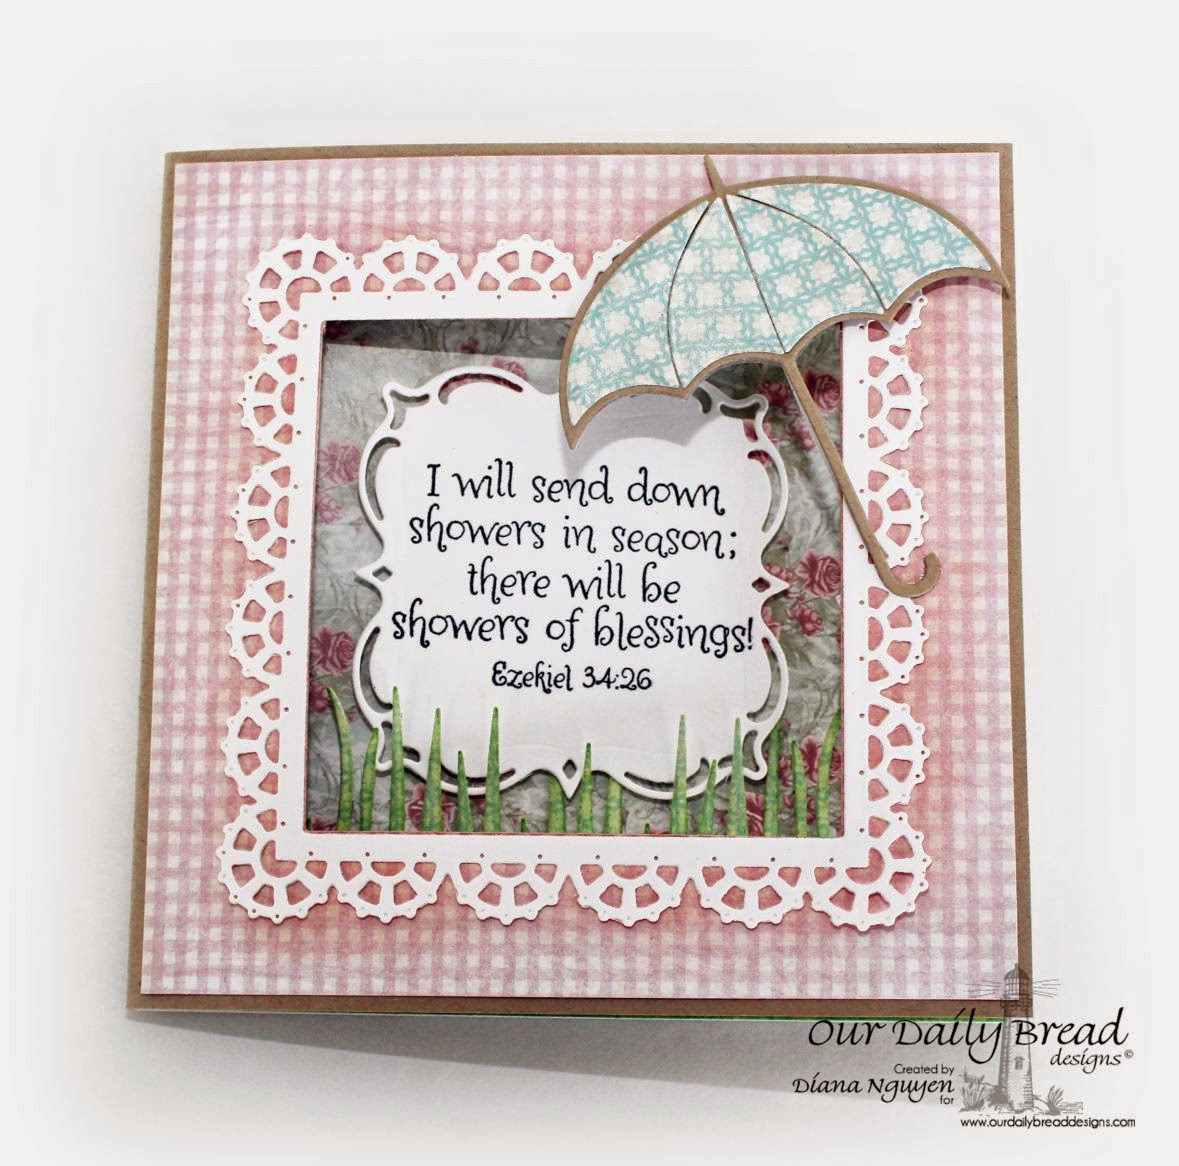 Our Daily Bread Designs, Umbrella Dies, Shabby Rose, April Showers, Layered Lacey Squares, Designed by Diana Nguyen